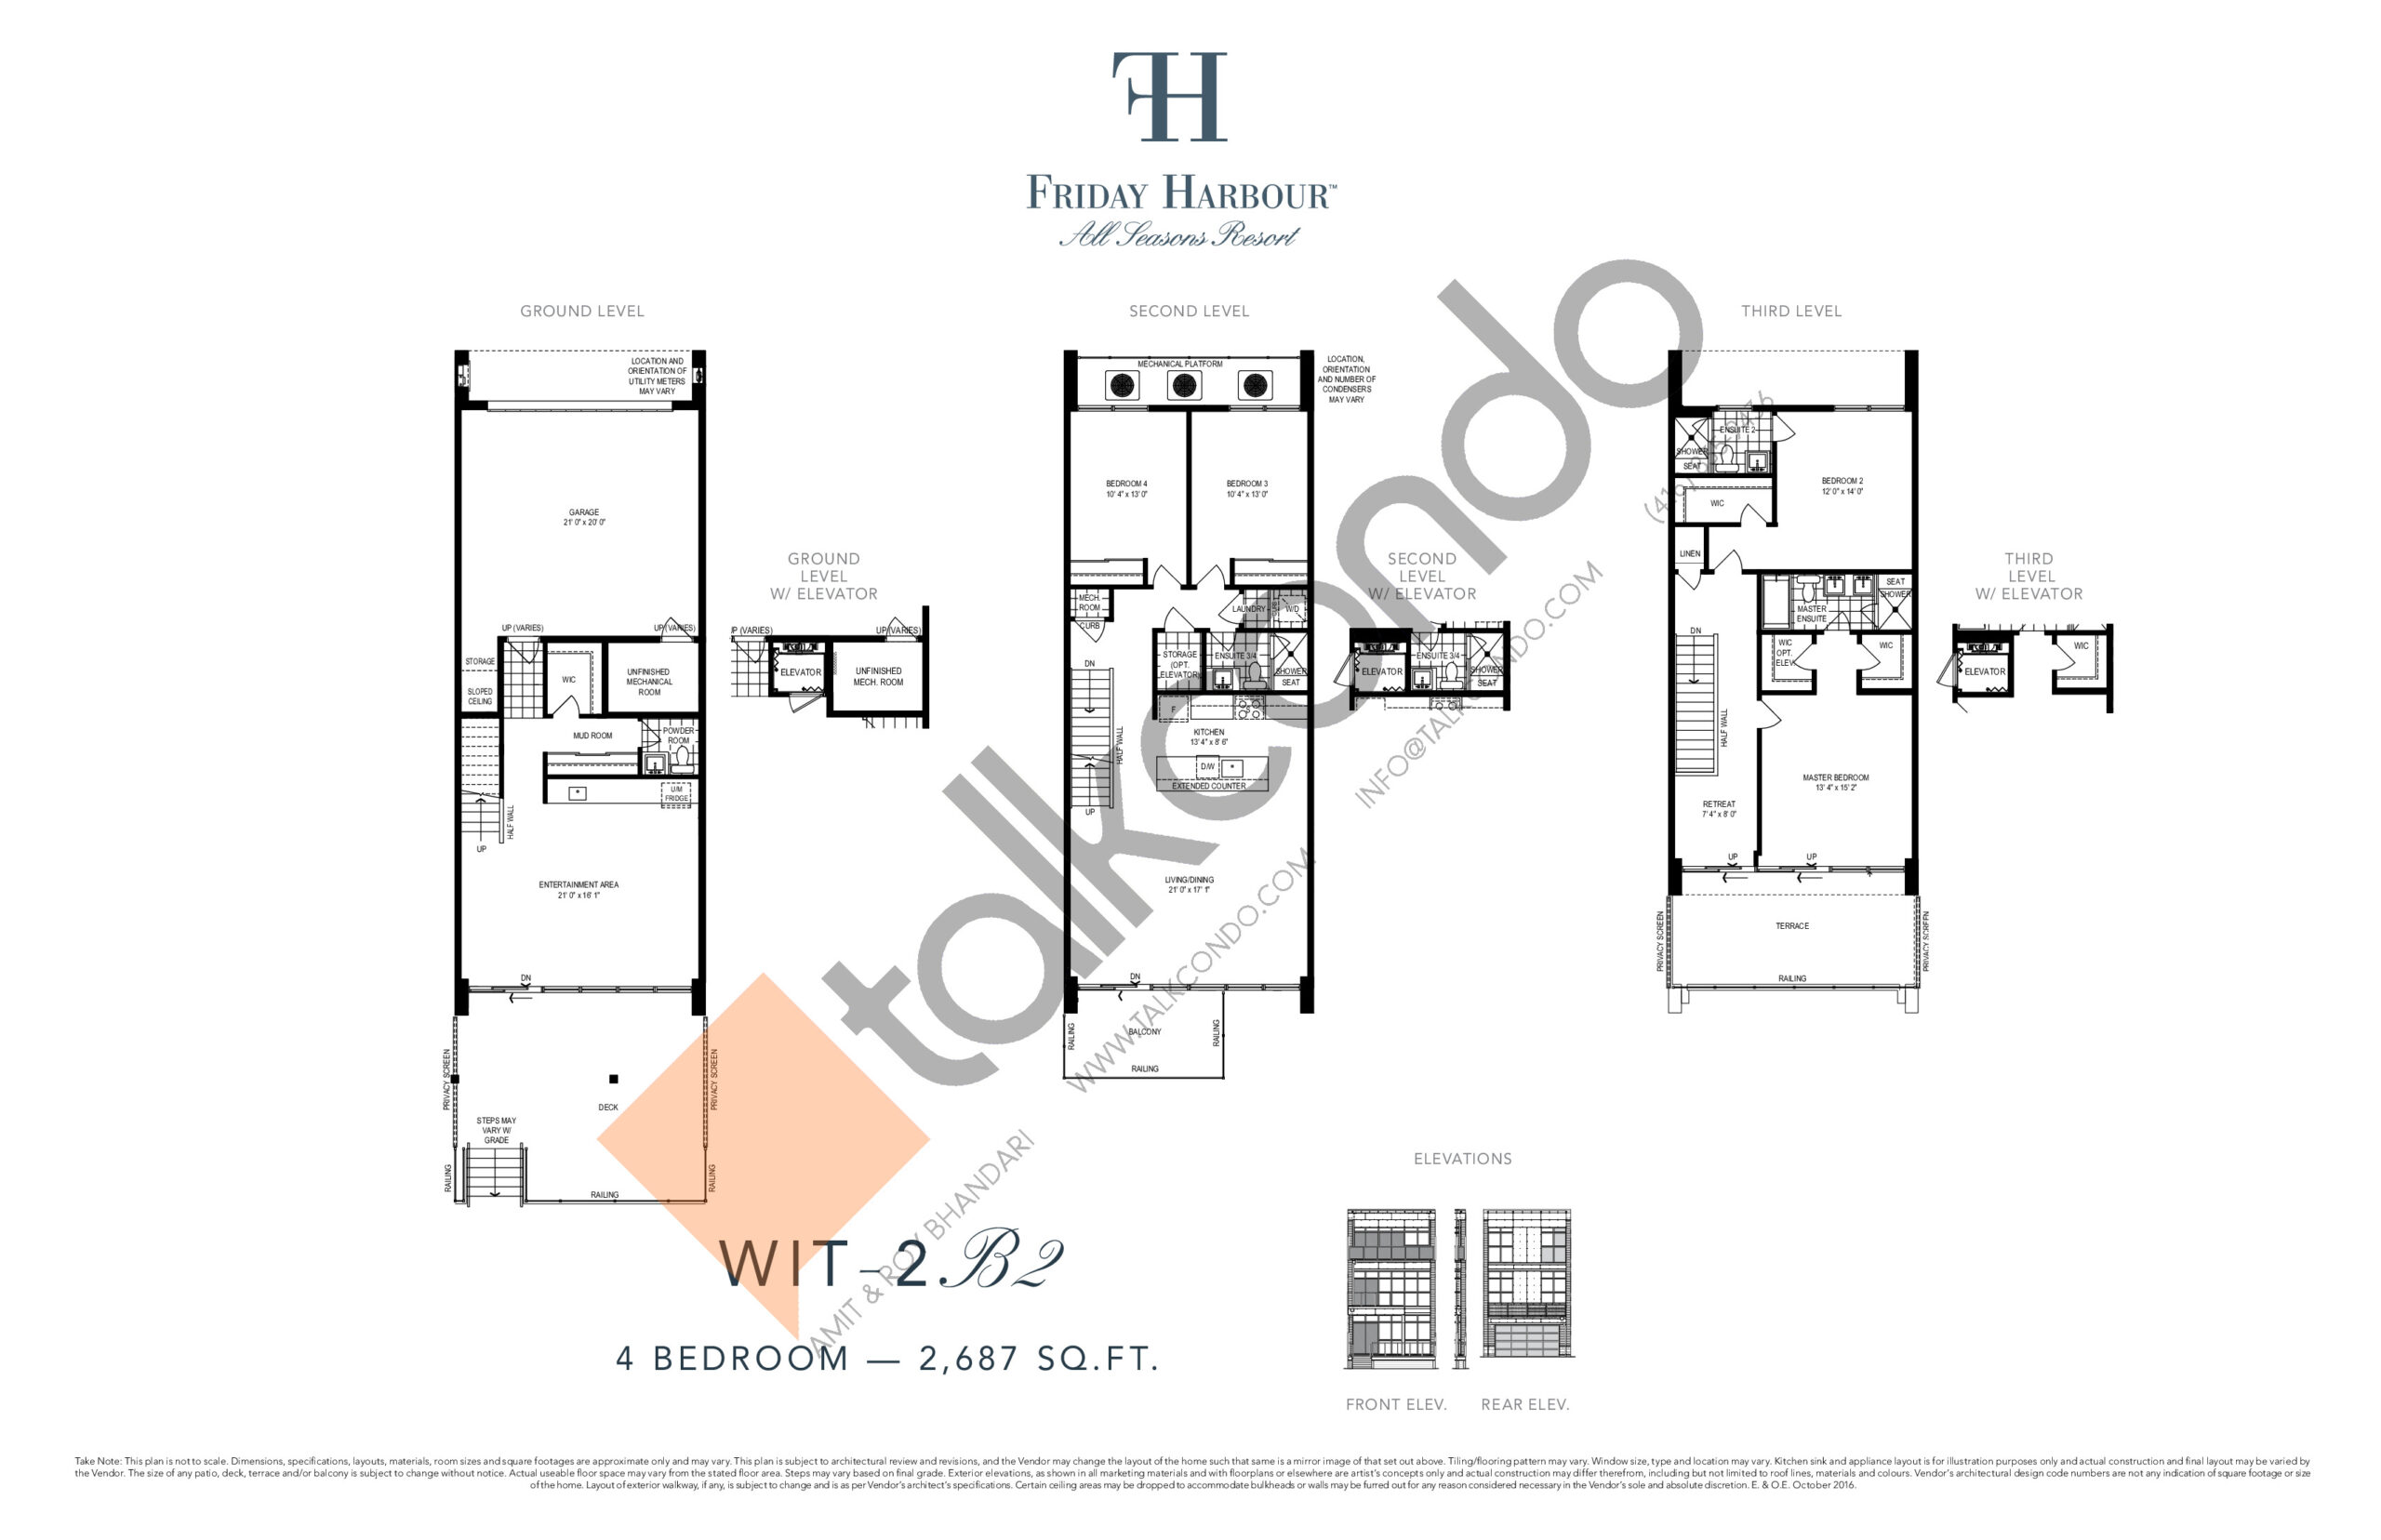 WIT- 2B2 (Ferretti Towns) Floor Plan at Friday Harbour Resort Condos - 2687 sq.ft